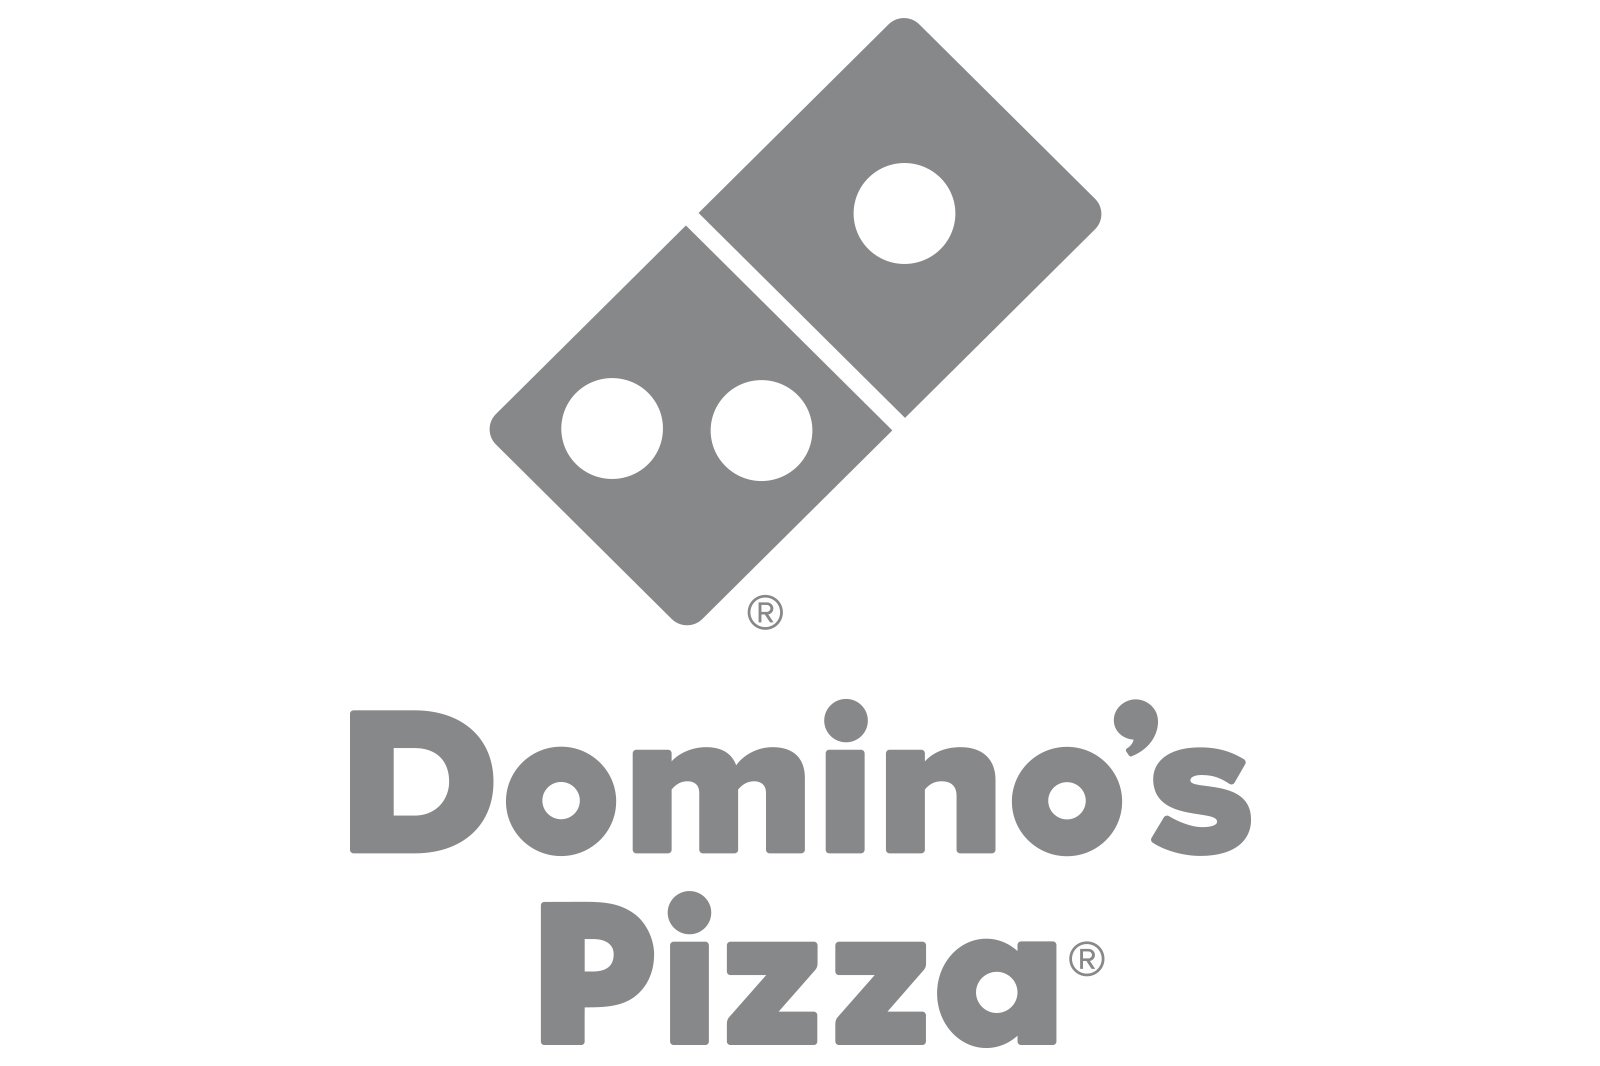 melonkicks-images-intro-dominos-pizza.jpg